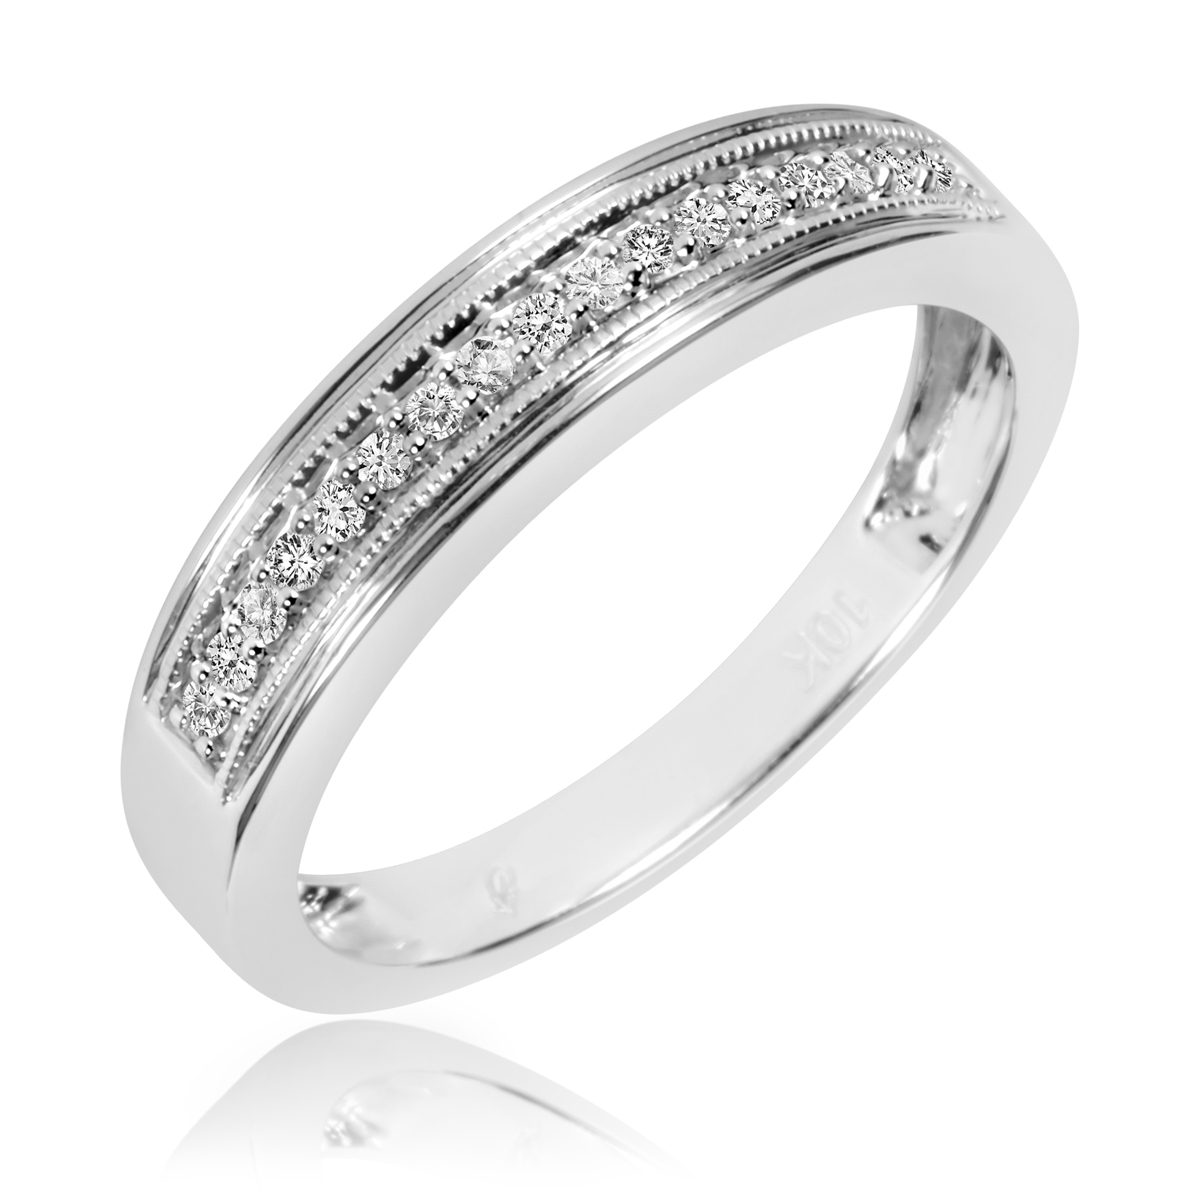 Carat T.W. Diamond Trio Matching Wedding Ring Set 10K White Gold